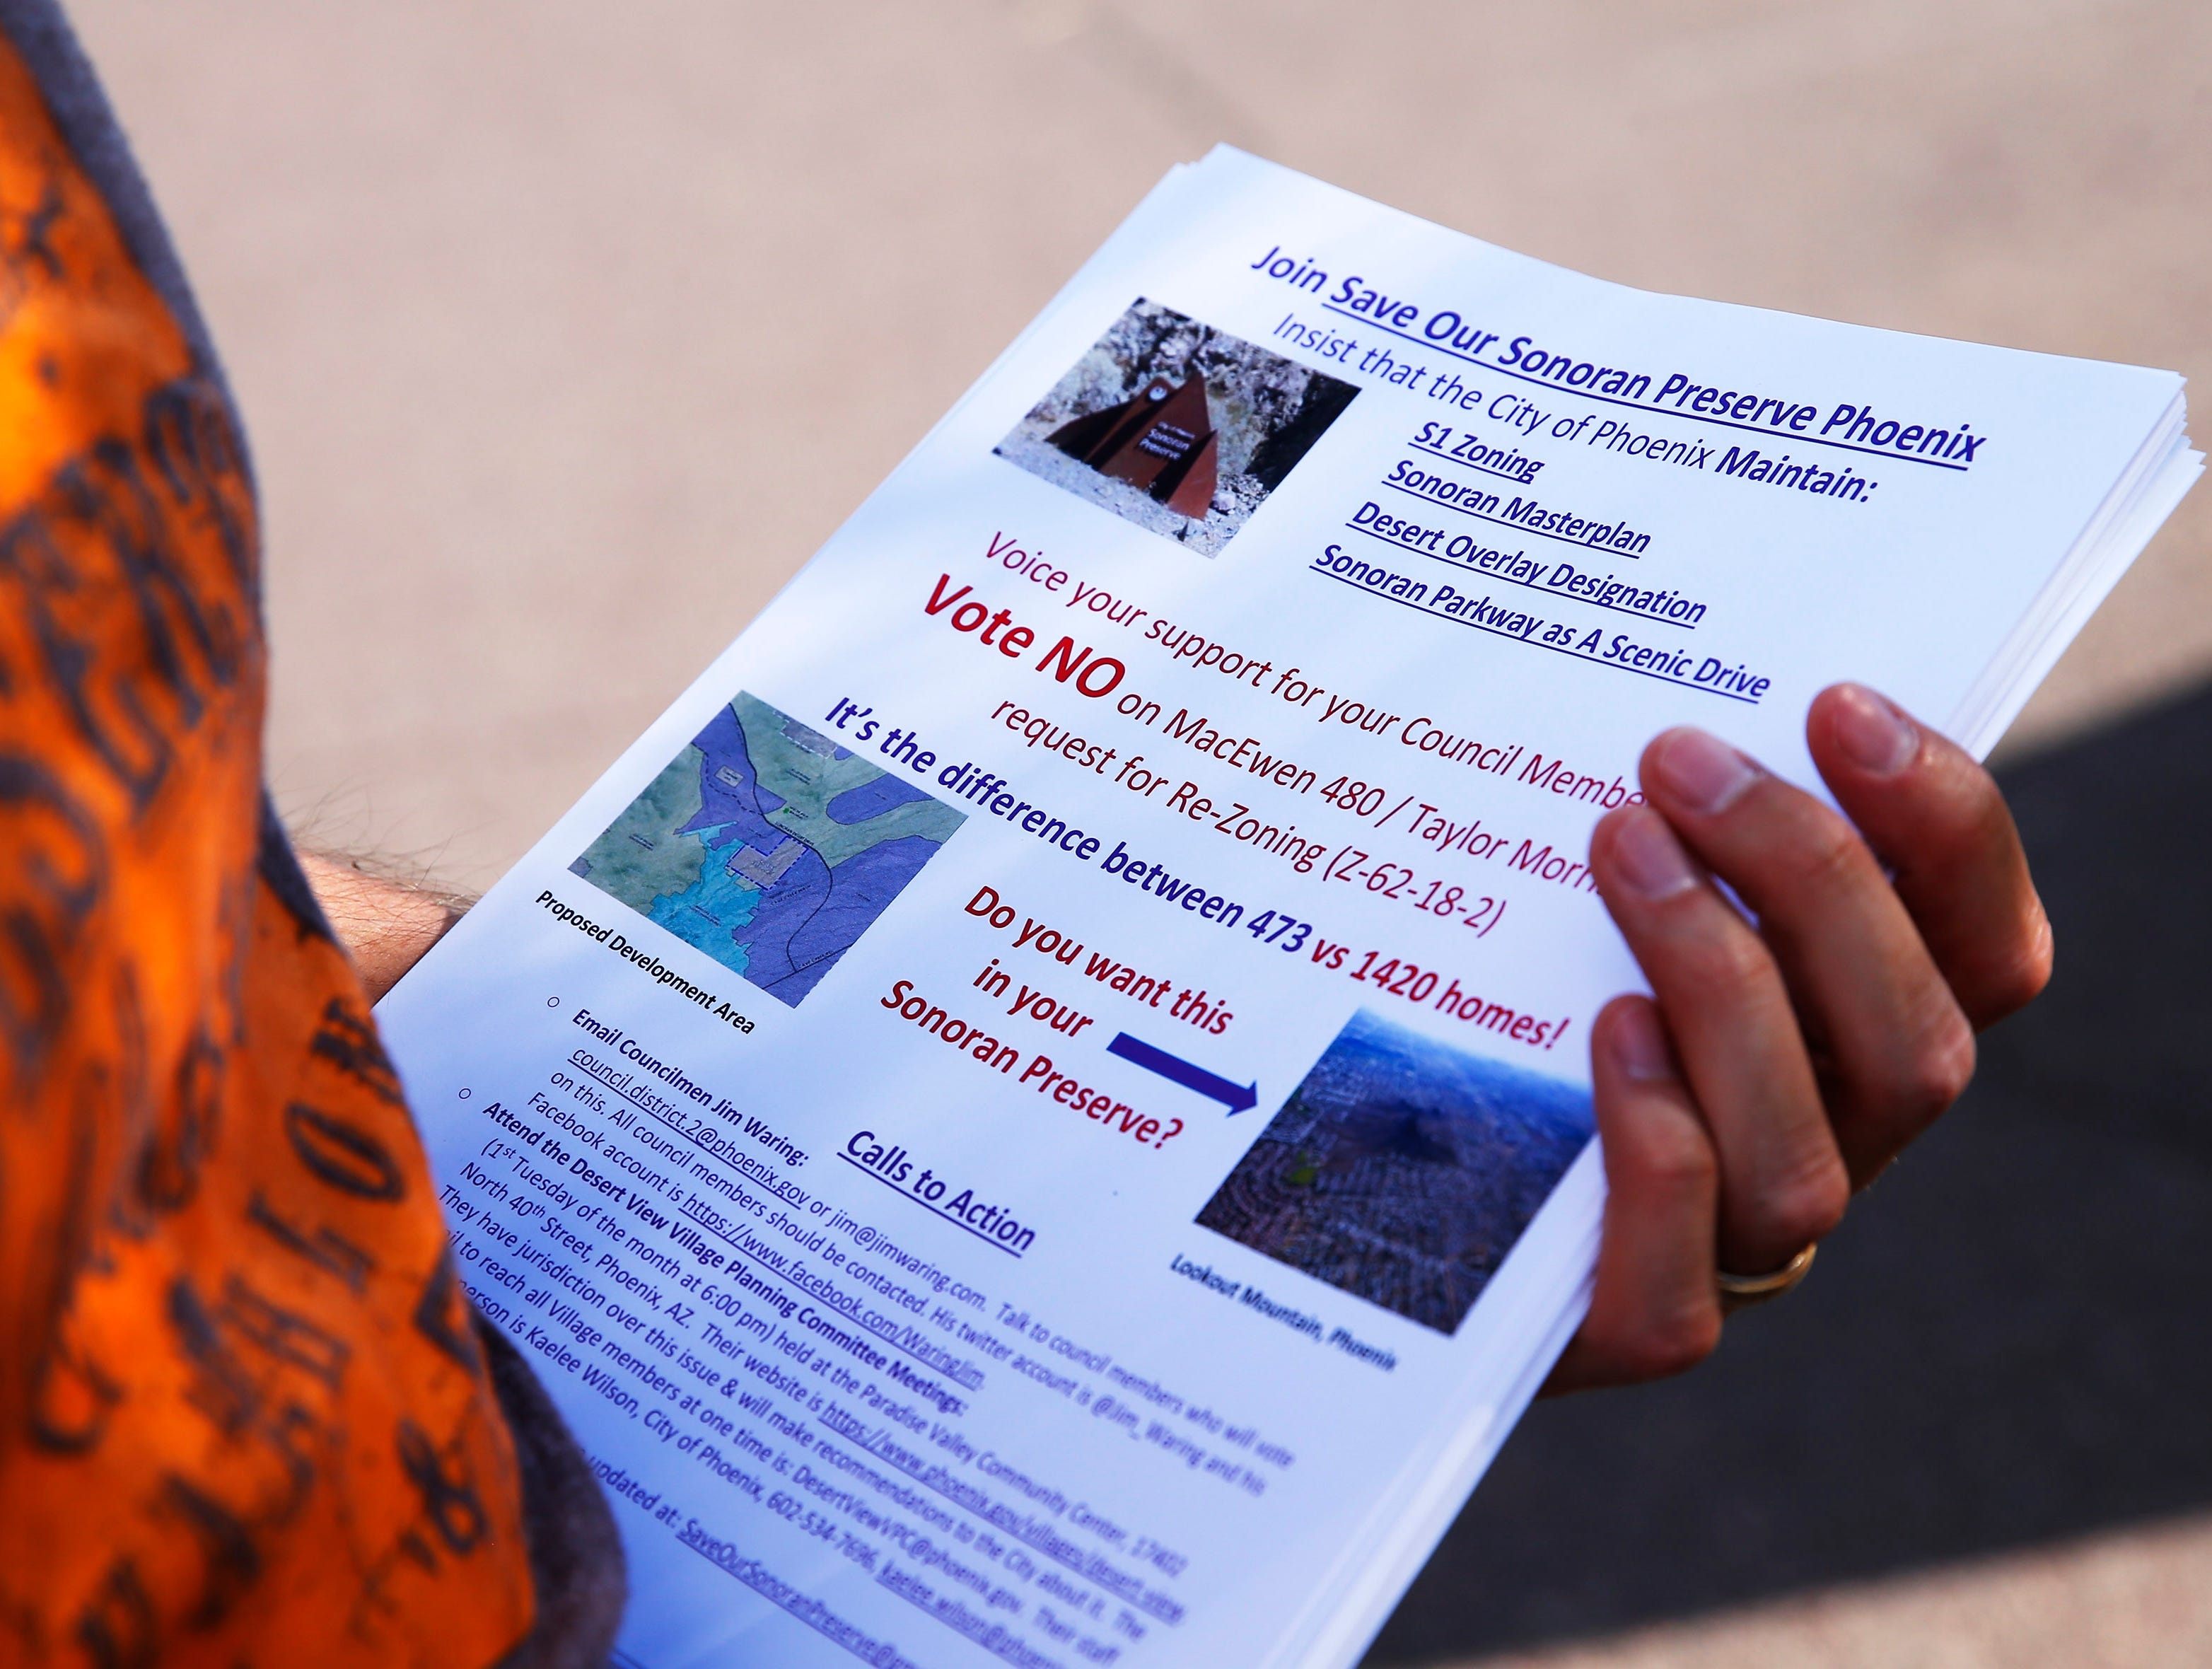 Gary Kirkilas holds flyers at the Apache Wash Trailhead in the Sonoran Preserve in north Phoenix May 12, 2019. His group, Save Our Sonoran Preserve, is opposing proposed high-density housing next to the preserve.